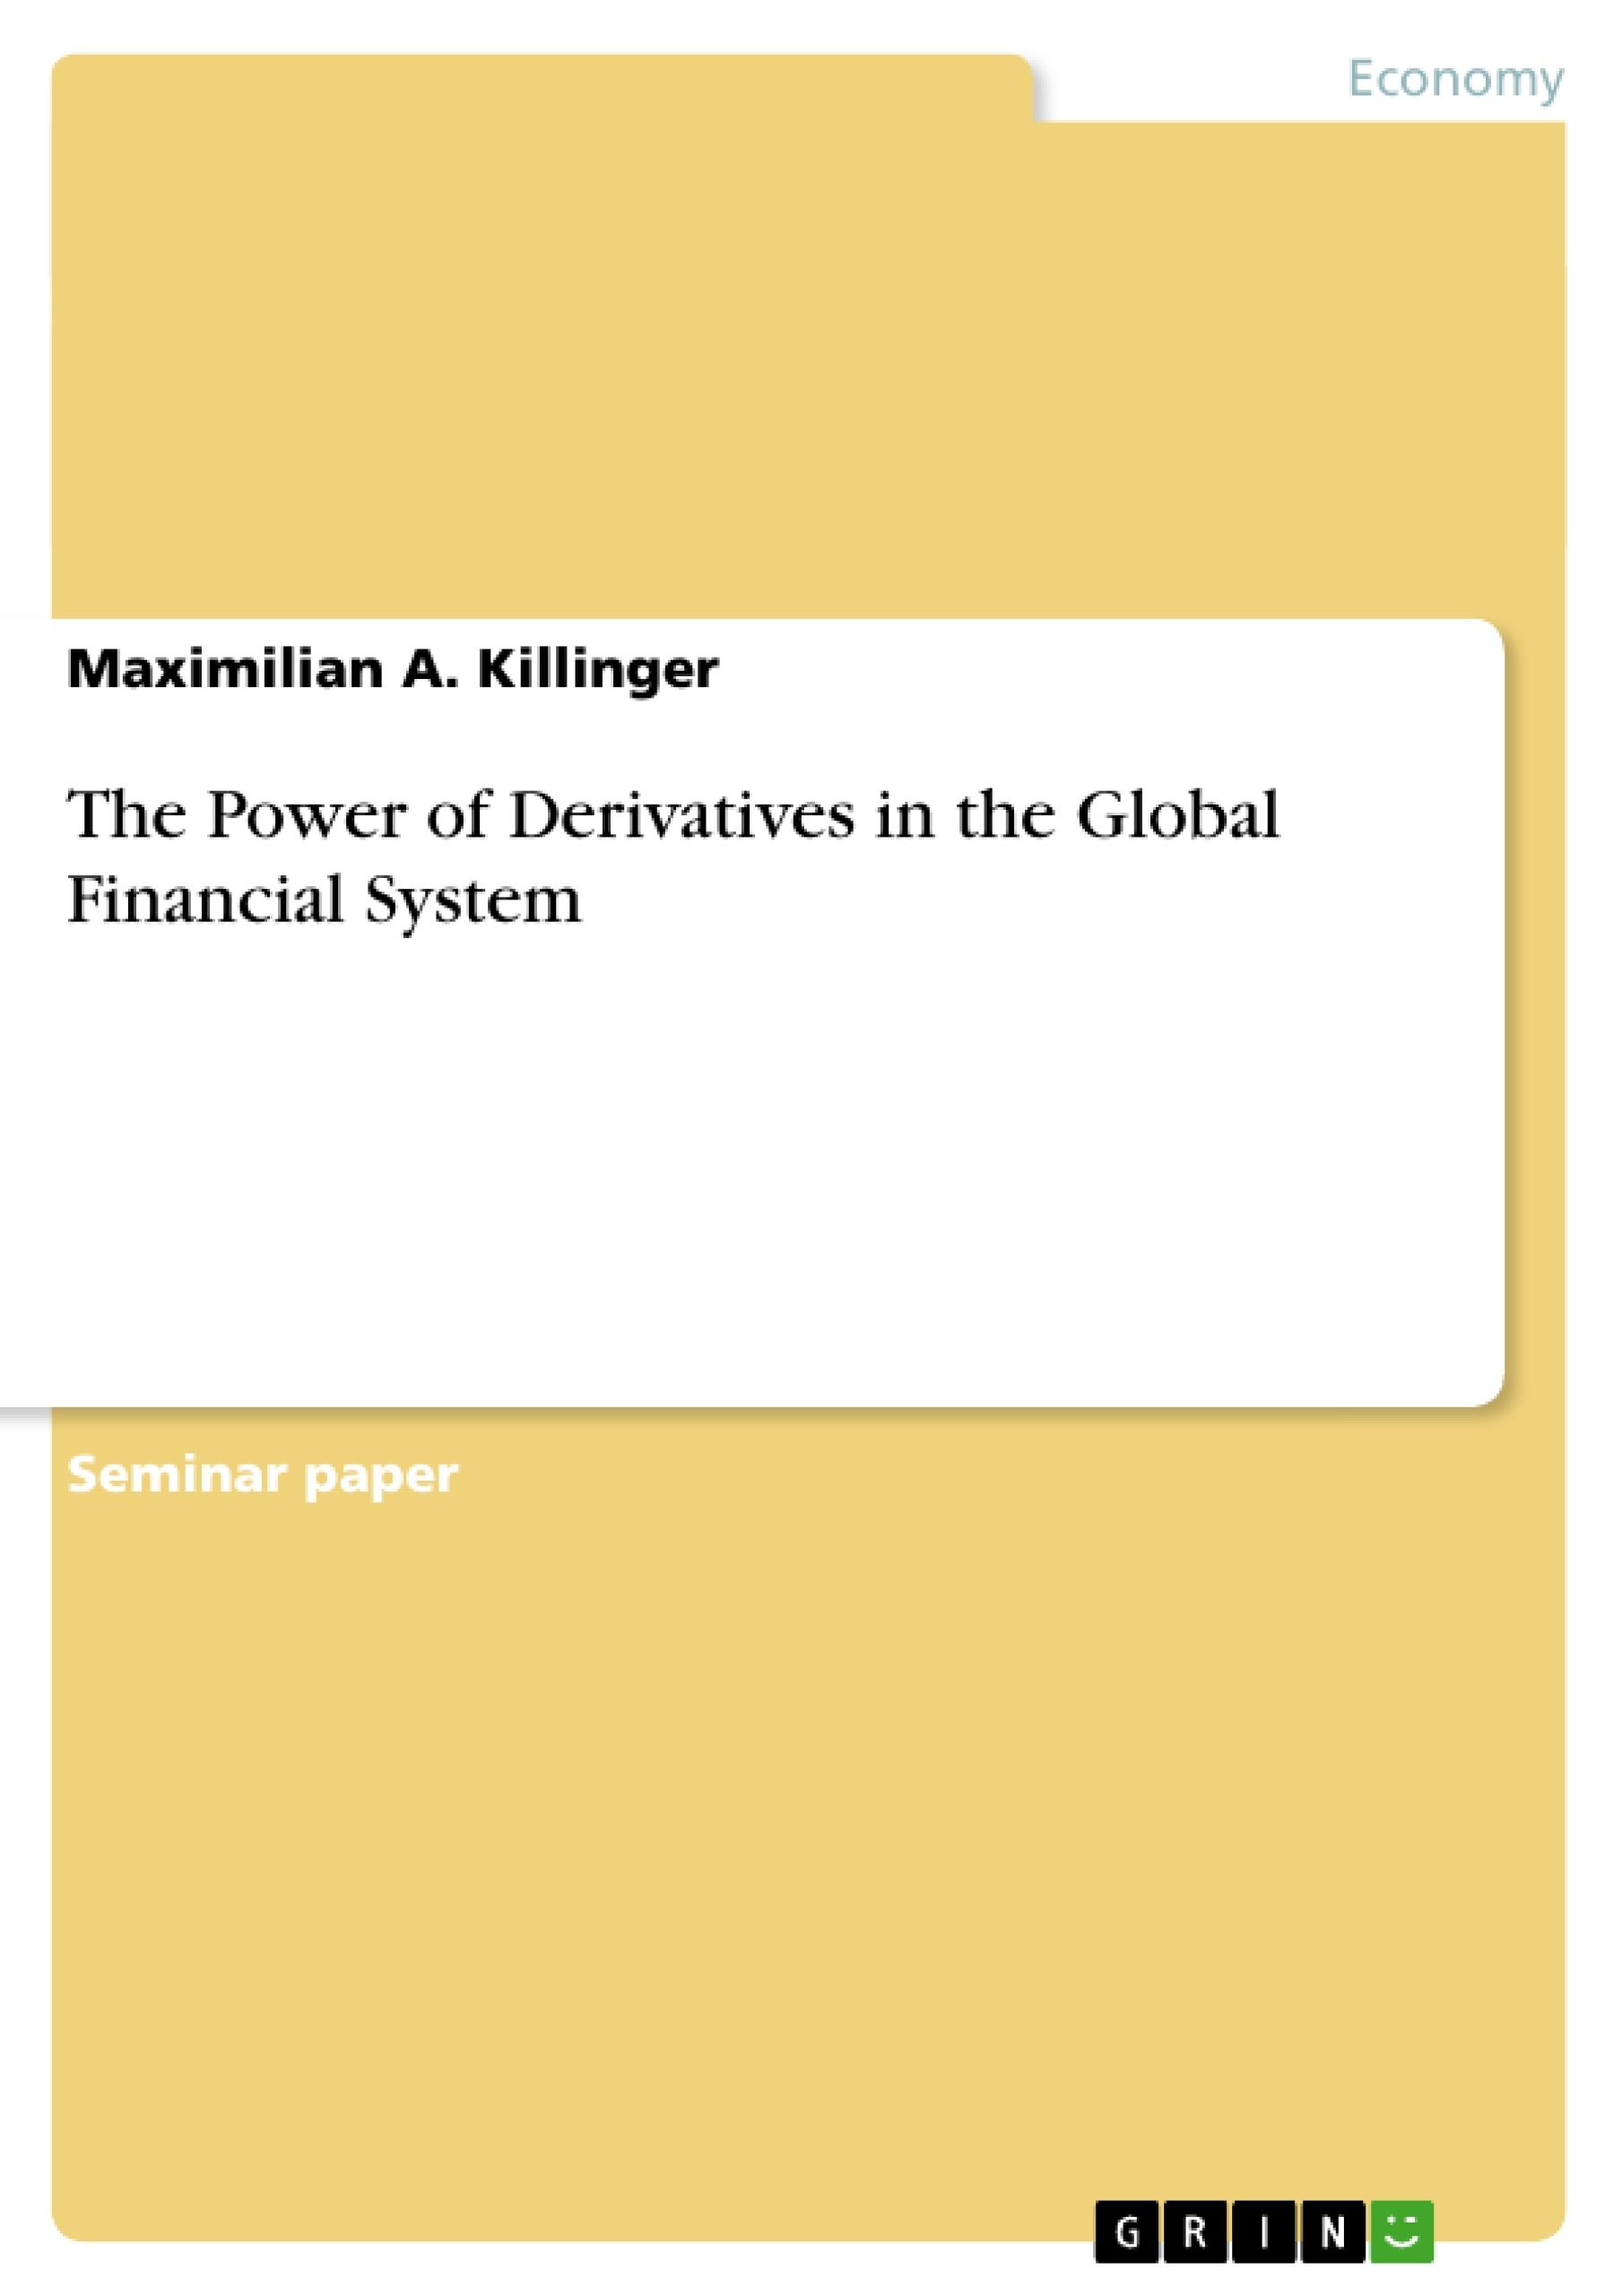 Title: The Power of Derivatives in the Global Financial System